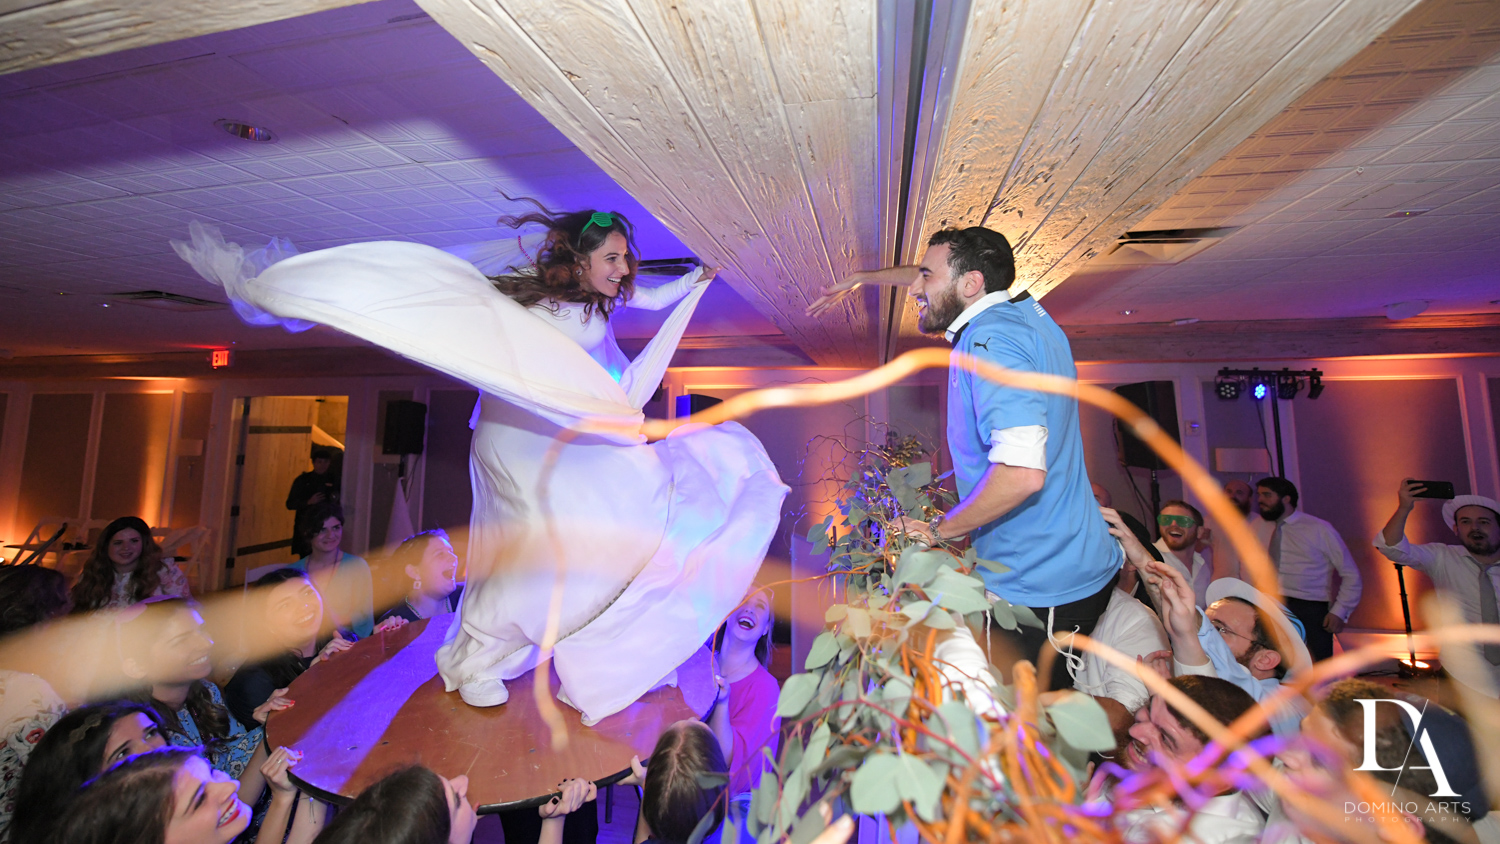 Orthodox Hora at Hasidic Jewish Wedding at The Addison in Boca Raton by Domino Arts Photography